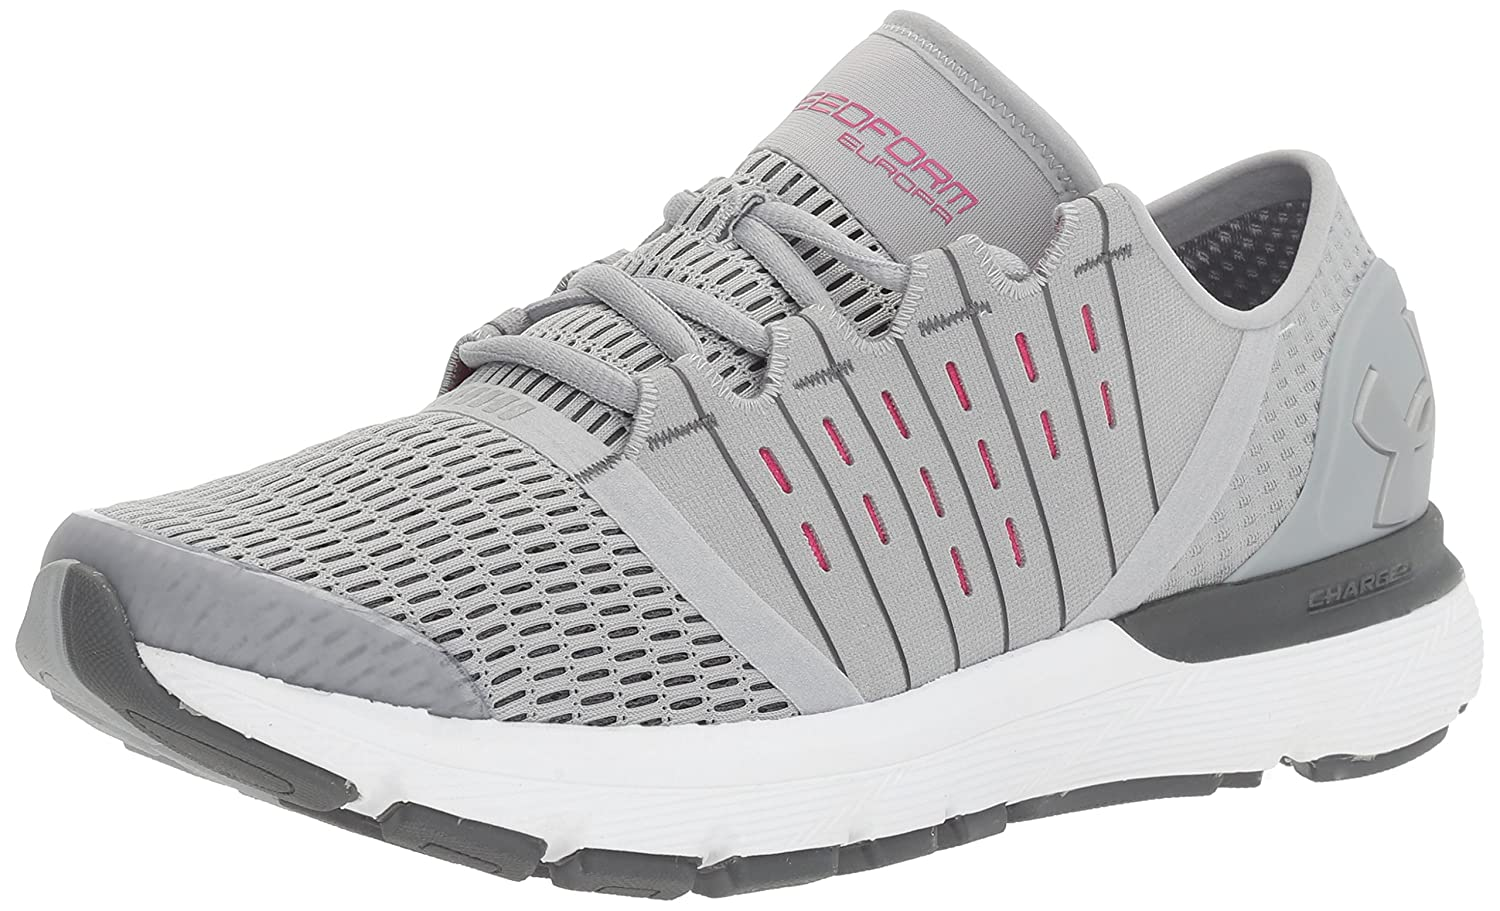 Under Armour Women's Speedform Europa Running Shoe B01GQL050G 8 M US|Overcast Gray (941)/Rhino Gray